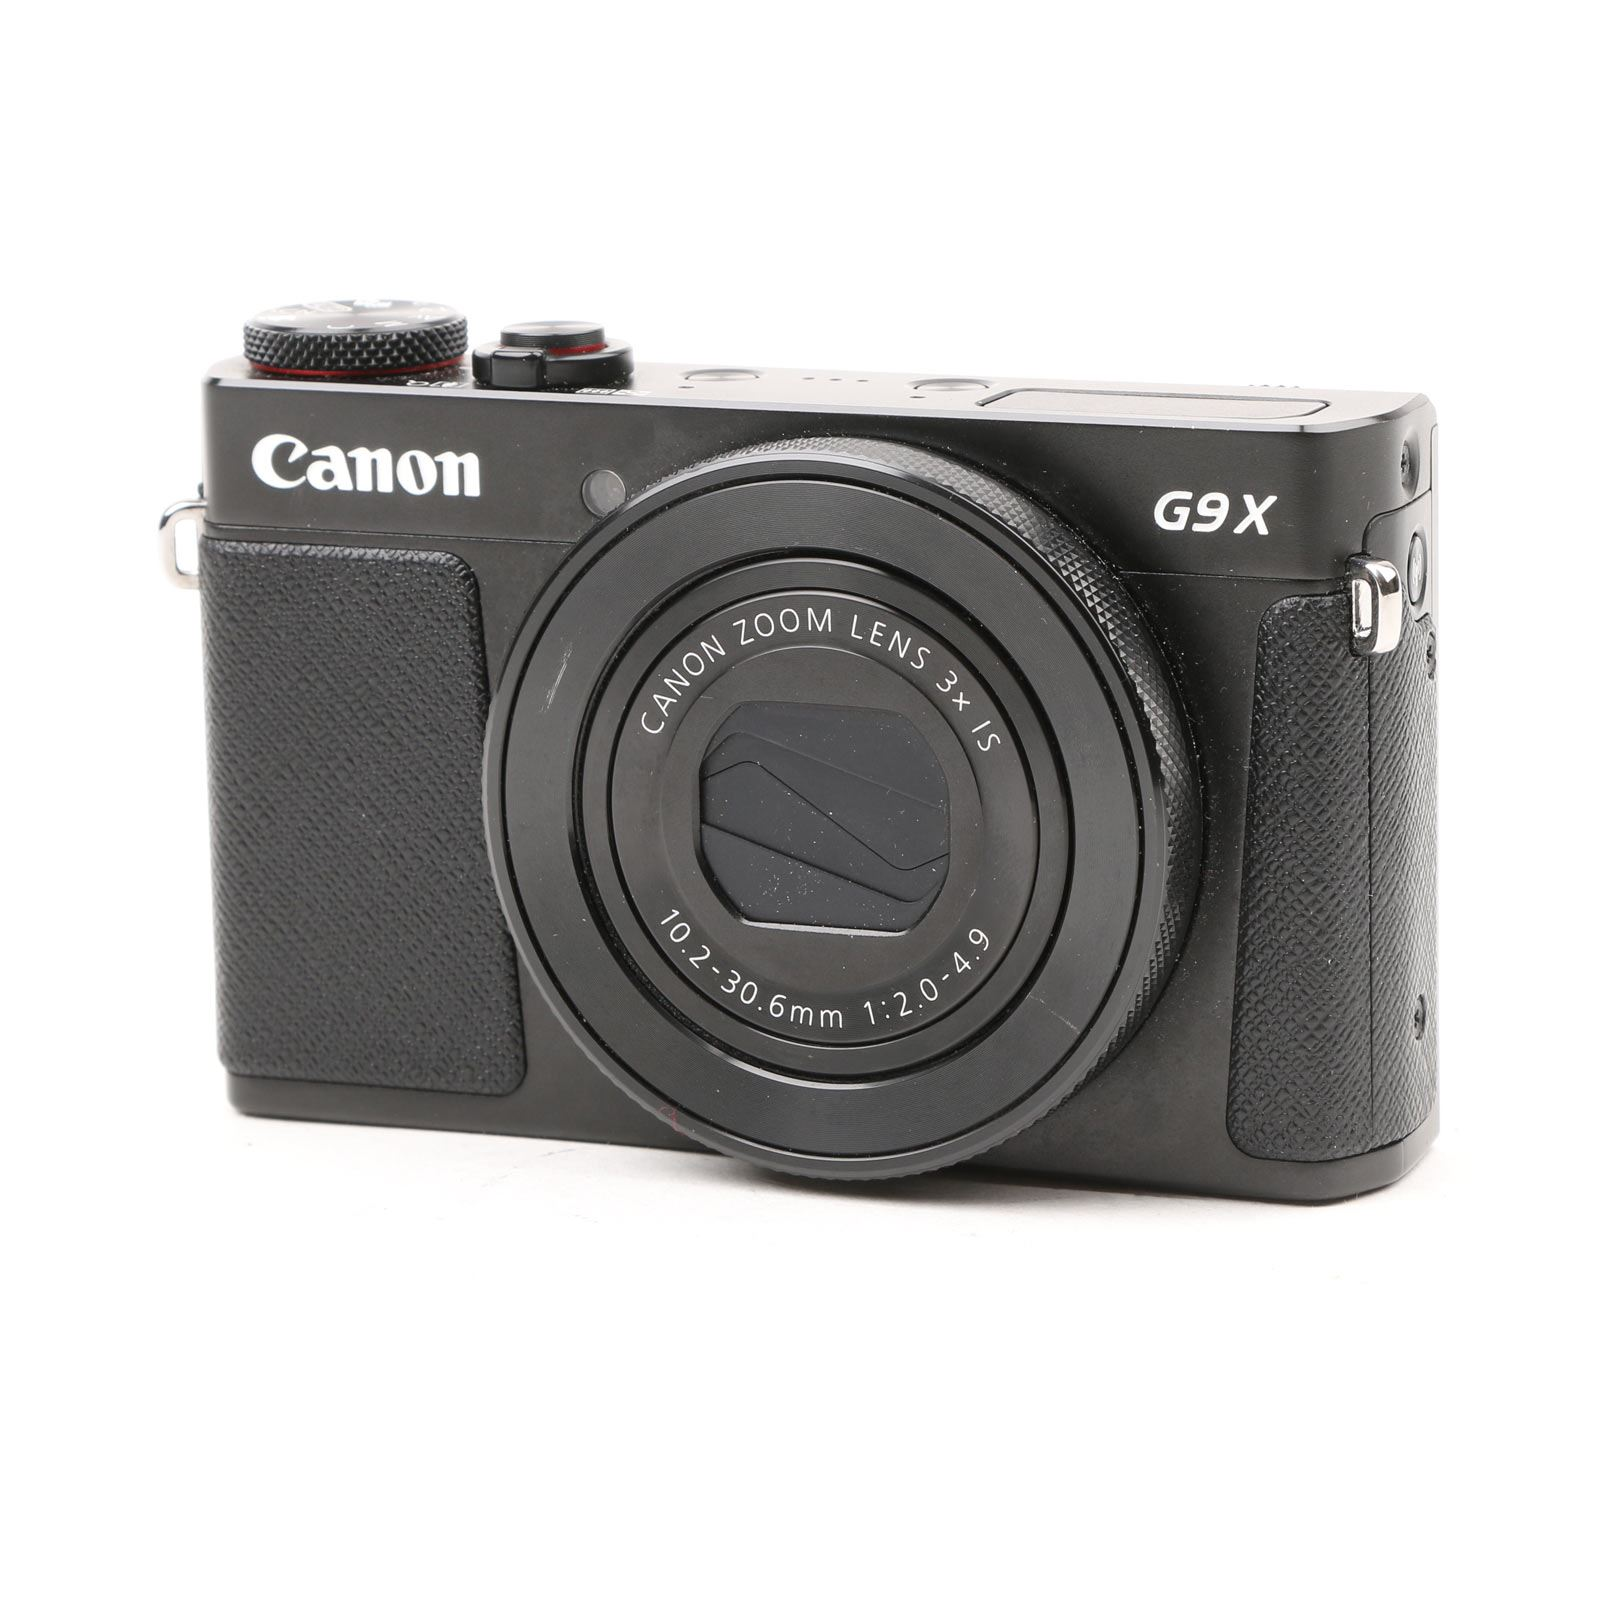 Image of Used Canon PowerShot G9 X Mark II Digital Camera - Black